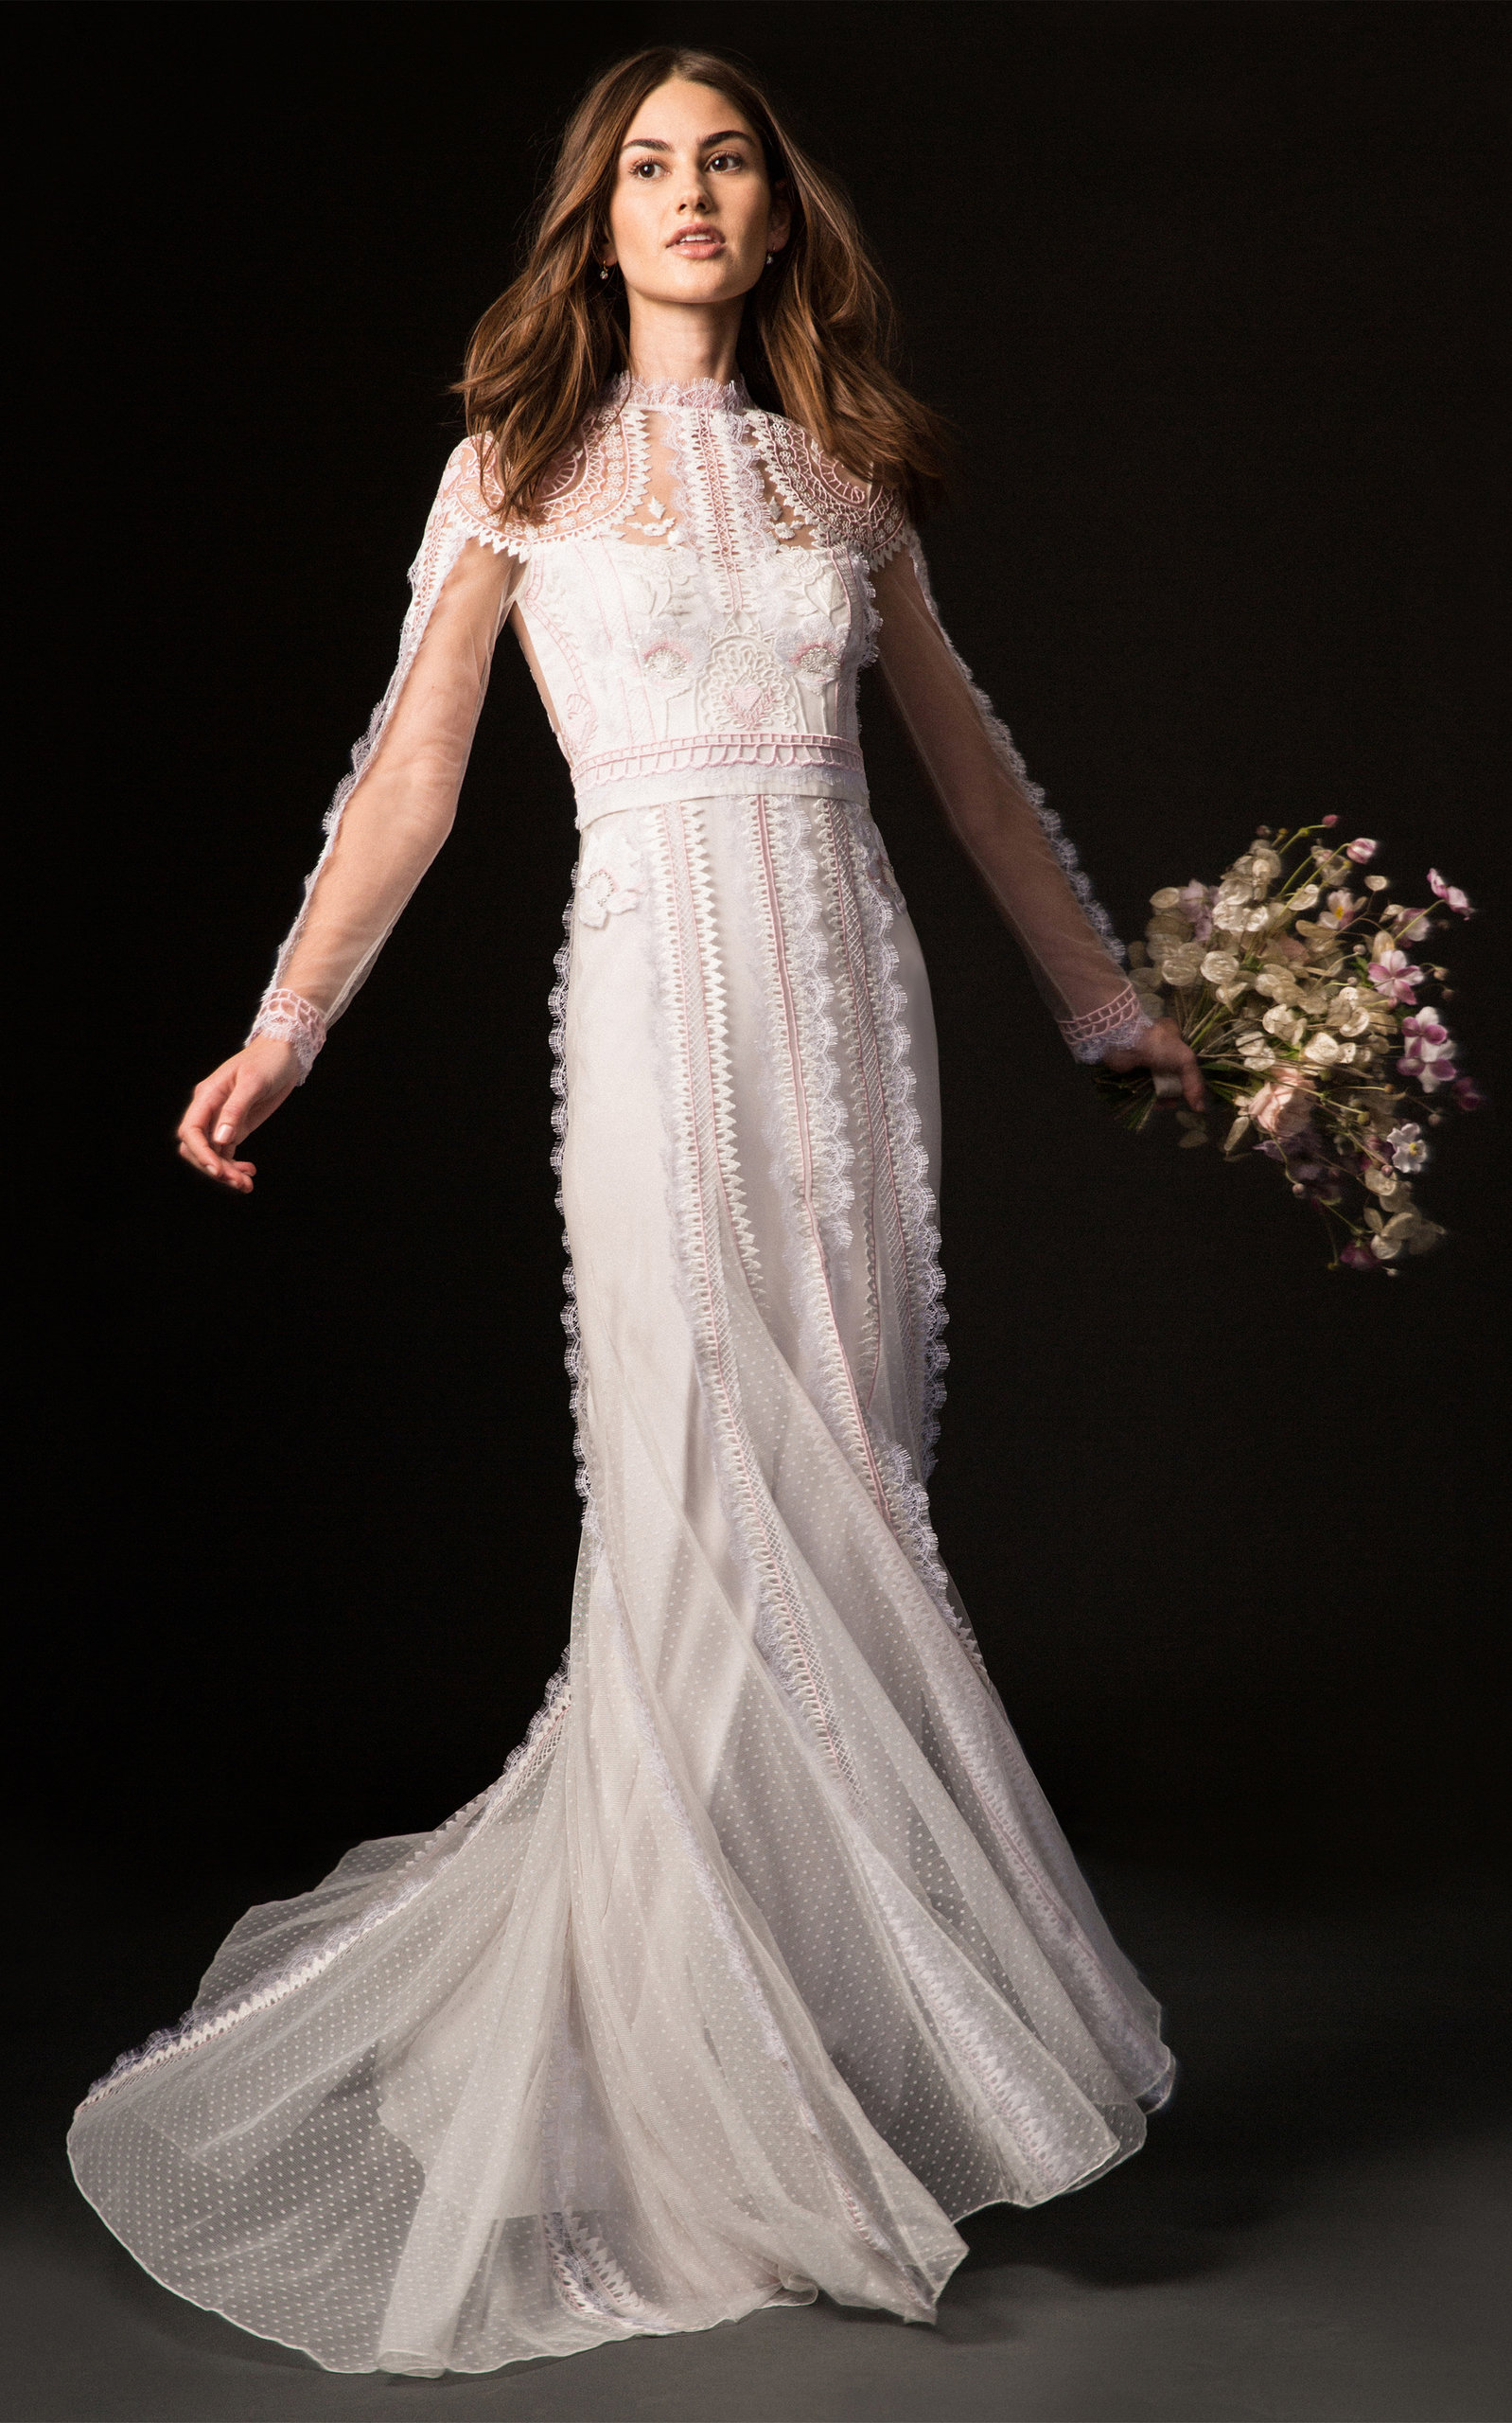 TEMPERLEY LONDON BRIDAL Beatrix Gown With Long Sleeve Lace Overlay in White